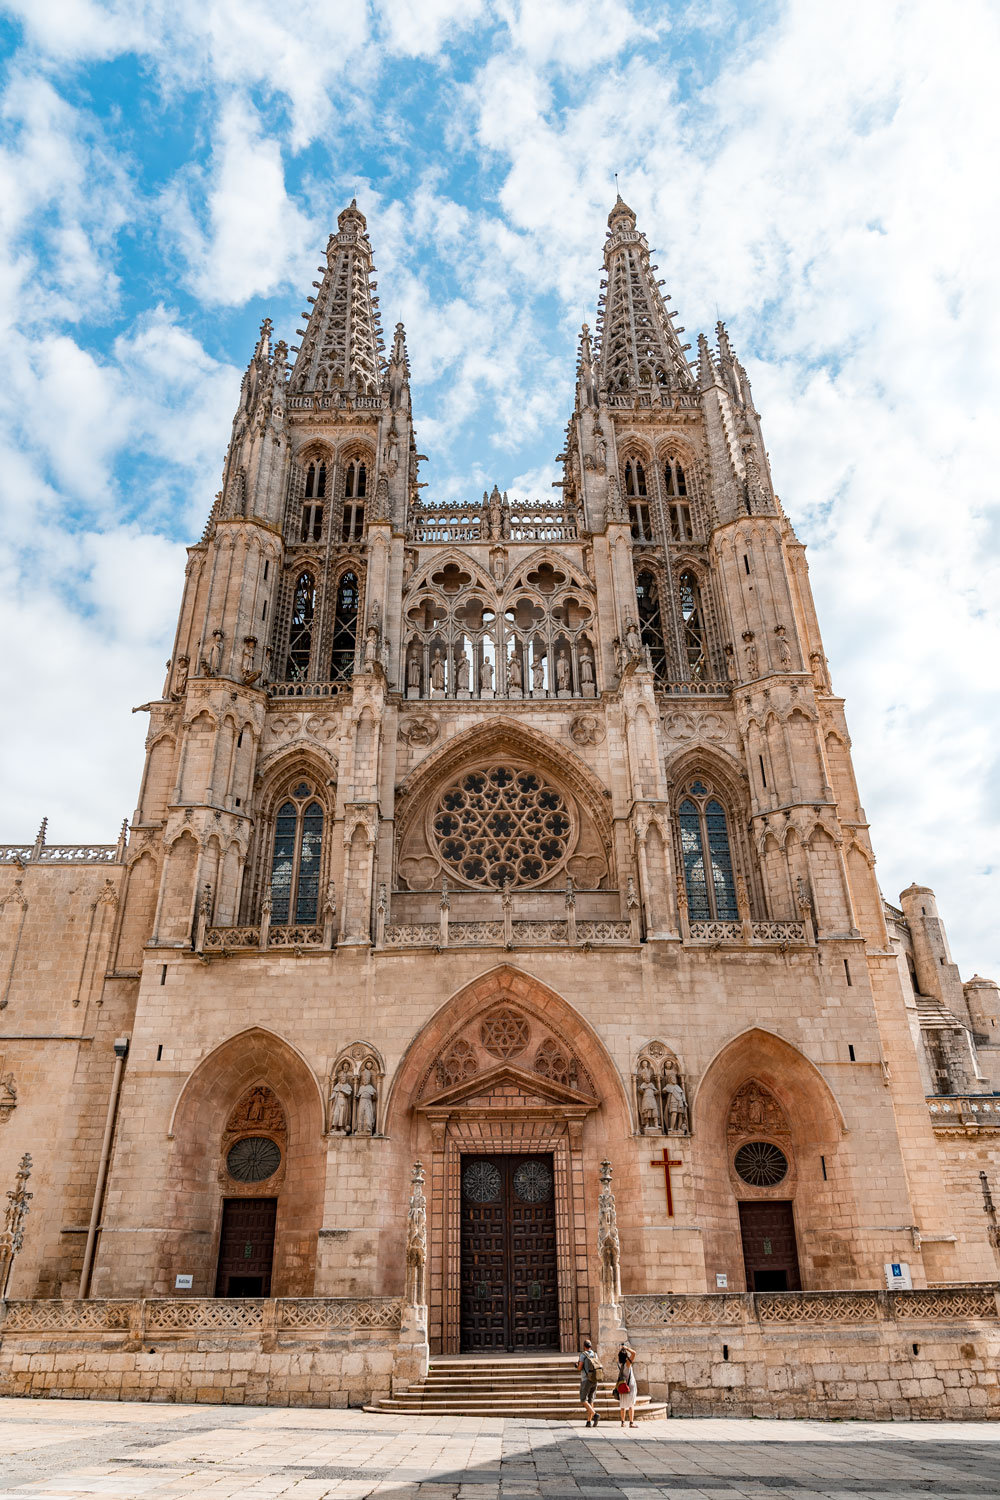 One of the most beautiful Gothic Style Cathedrals in Spain - Burgos Cathedral